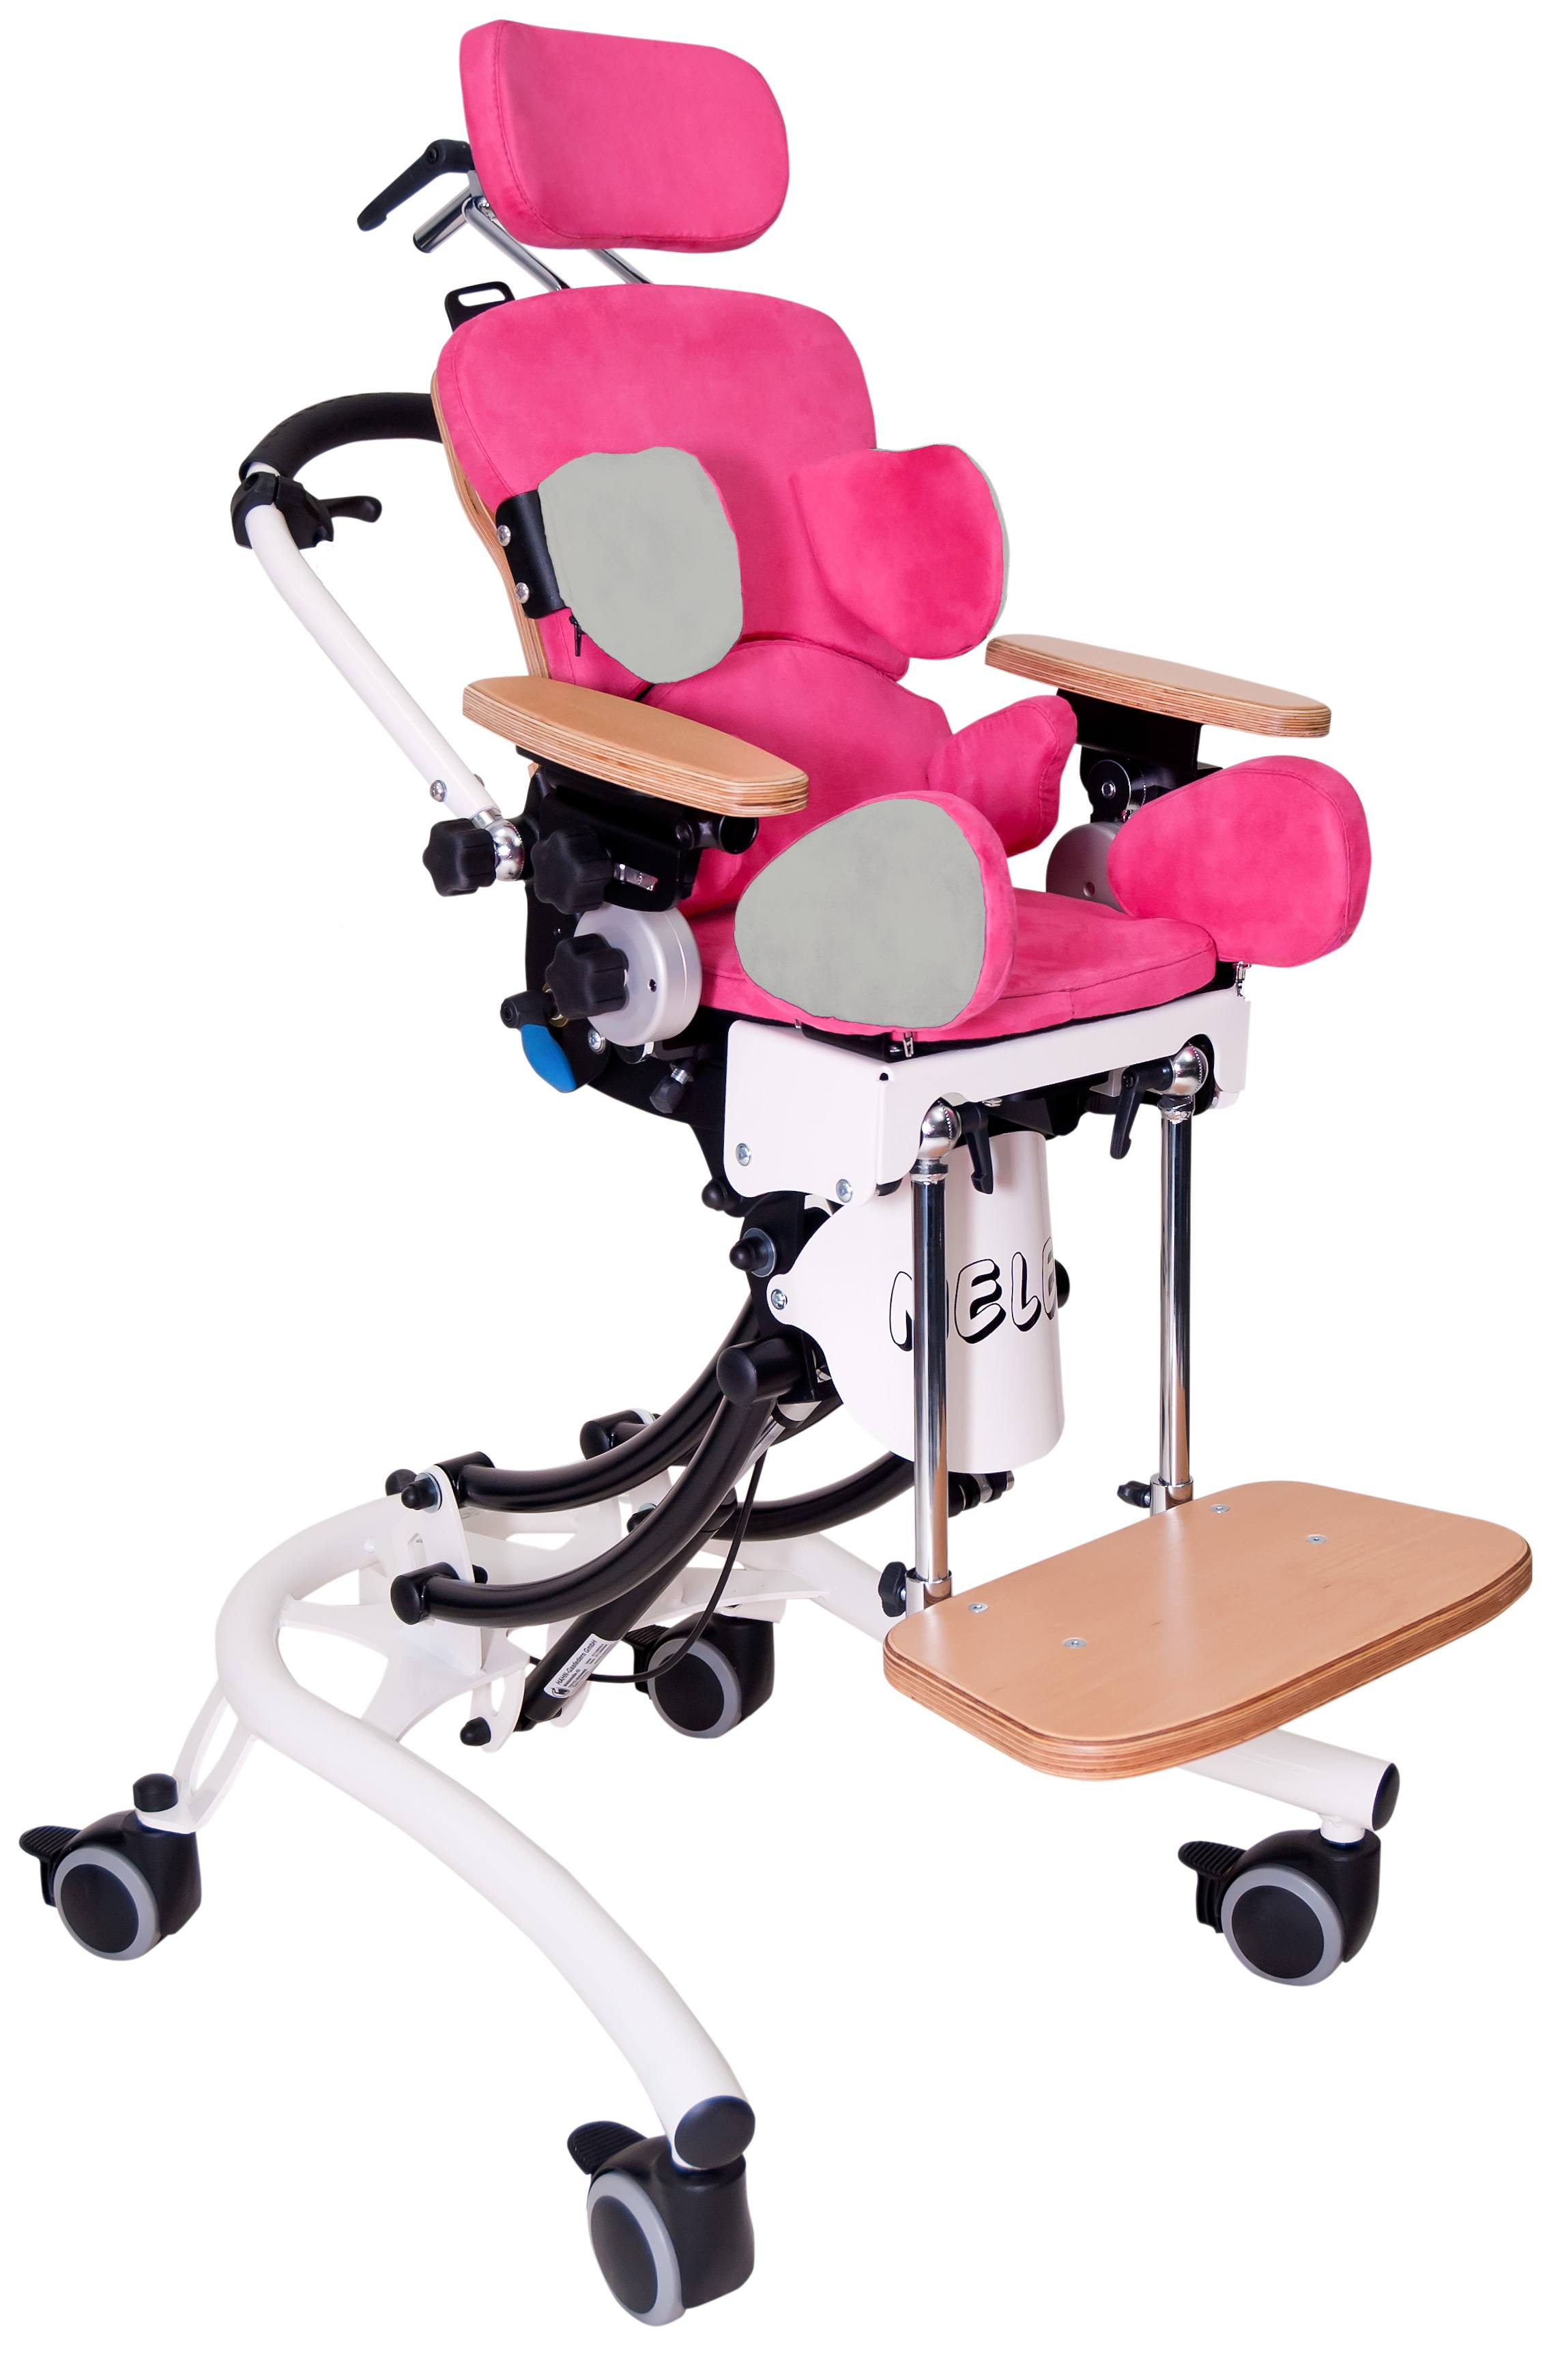 kinder-rehatechnik-ergonomic-care4